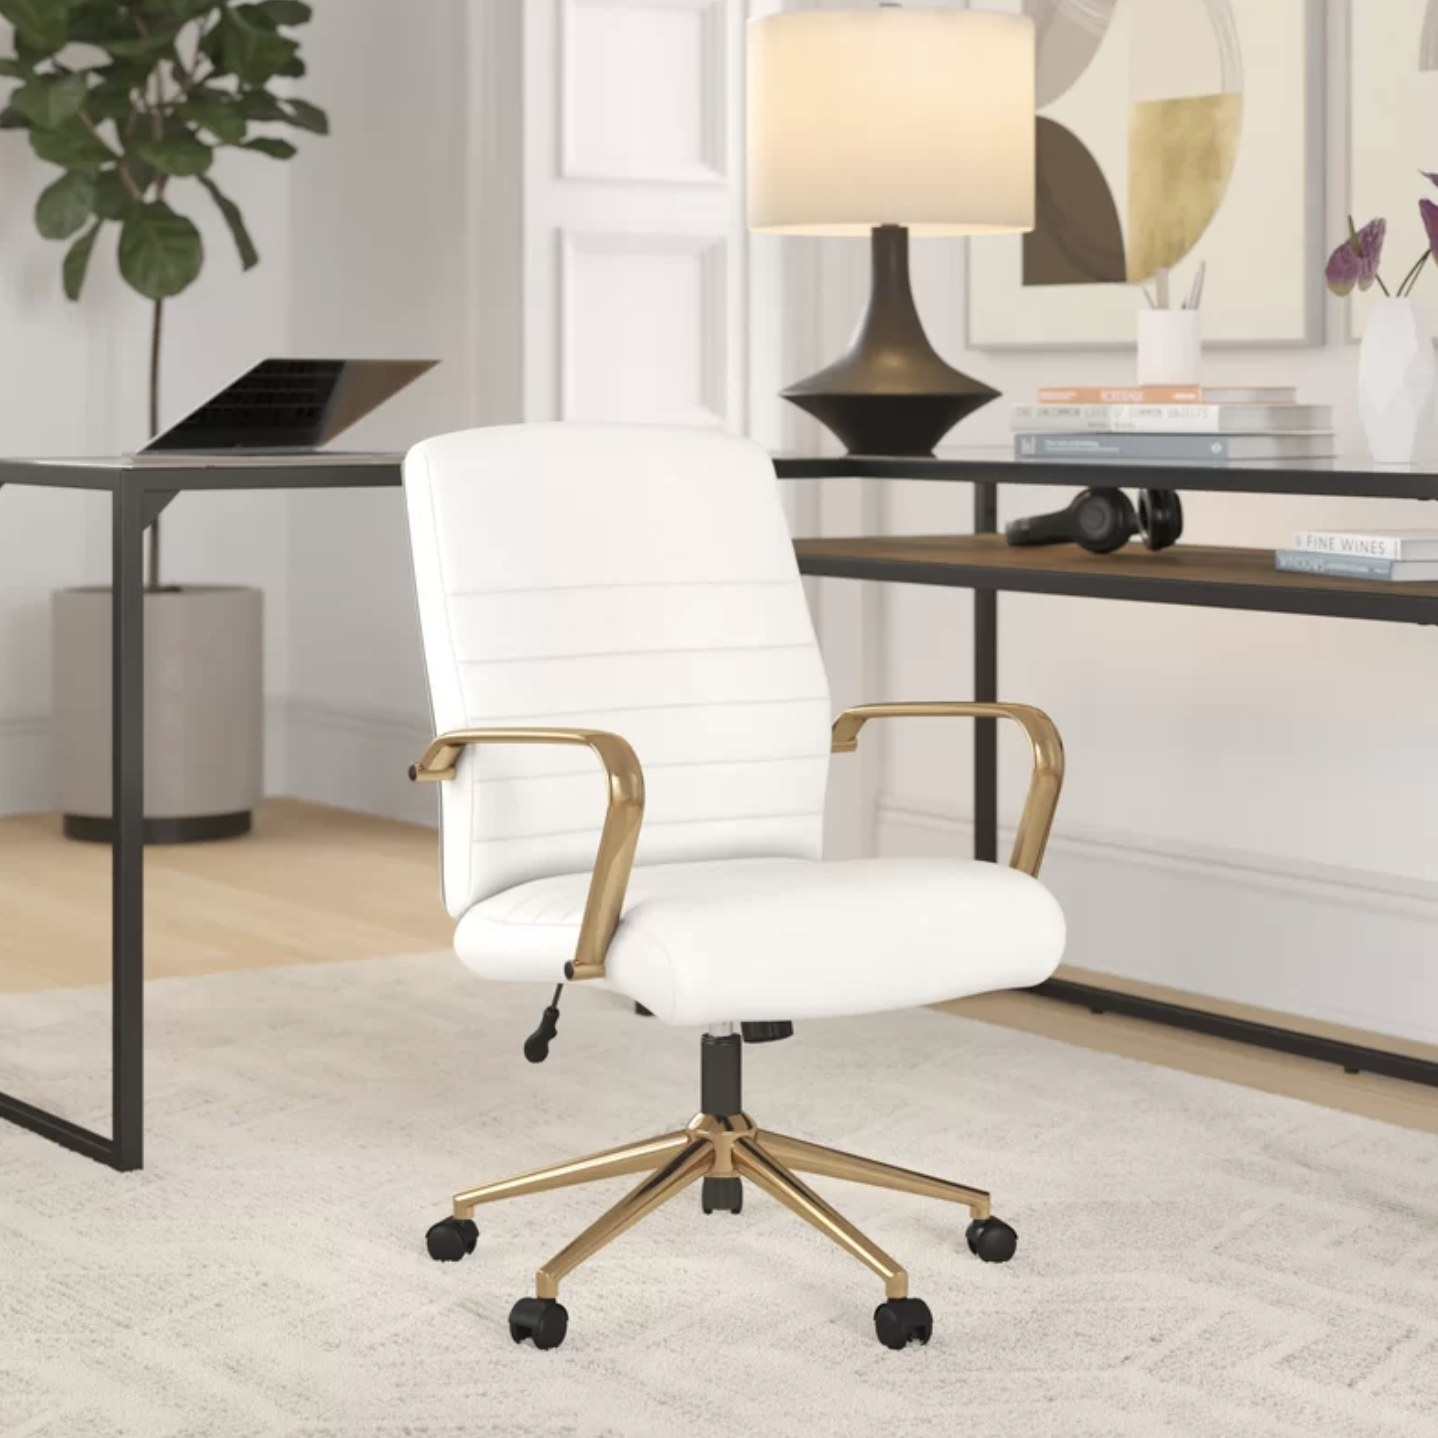 A white office chair with gold accents